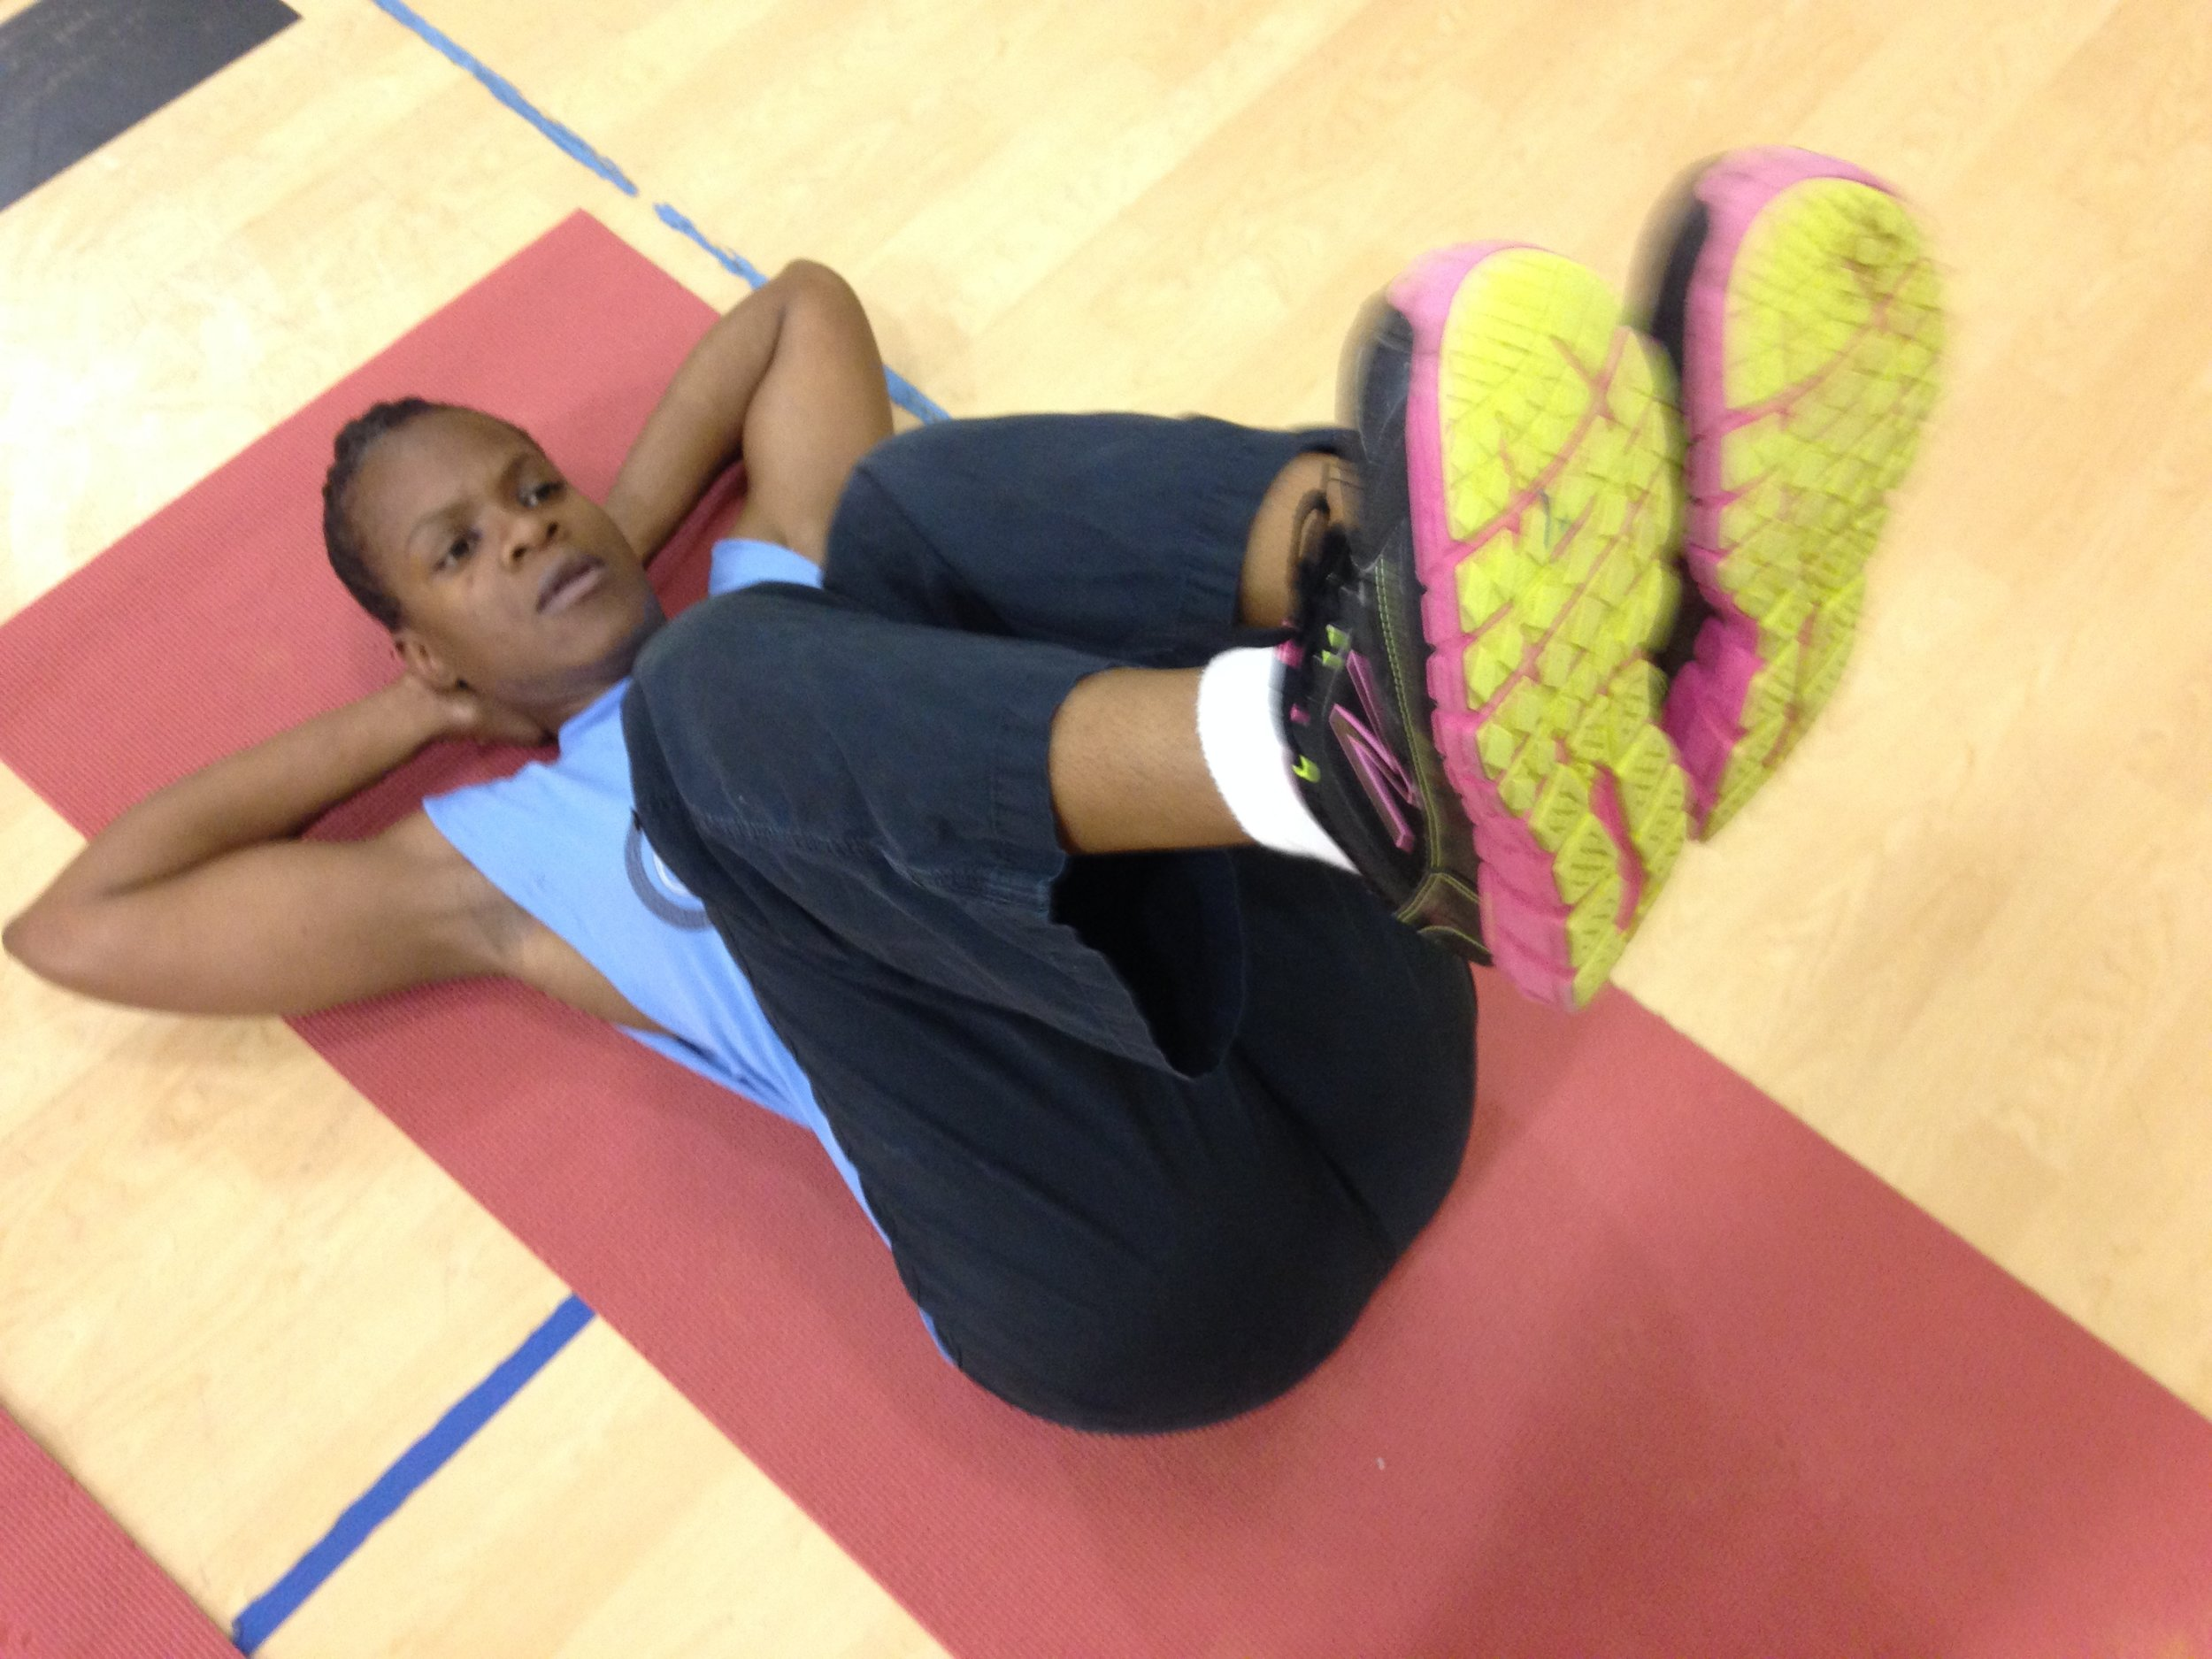 Strength and Core FoundationsFridays, 8-9am - This class may be lower on intensity but it is just as high on effectiveness and fun. Our Friday class focuses on foundational strength and core exercises, and adds to the morning classes offered through Hedingham's HOA class schedule. Suitable for all levels of fitness.